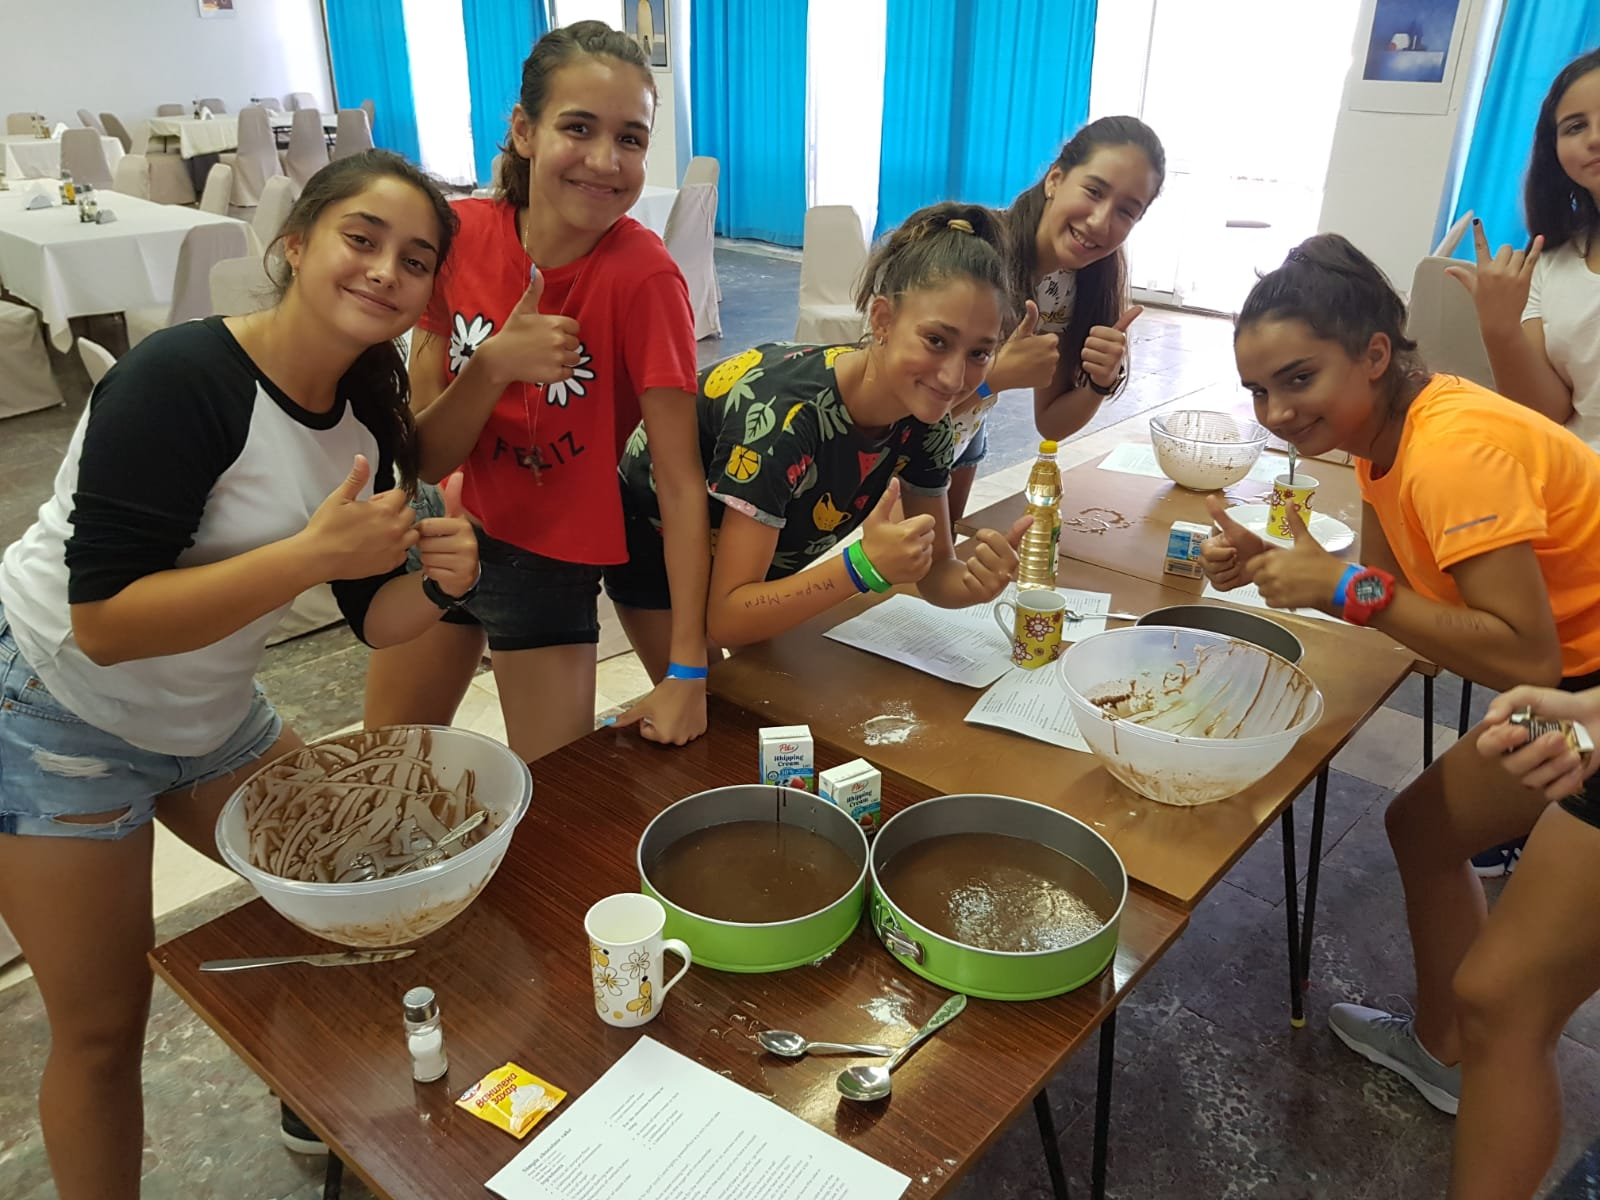 Z camp, day 8 - Making a cake, Make a cake, the girl group is ready for baking